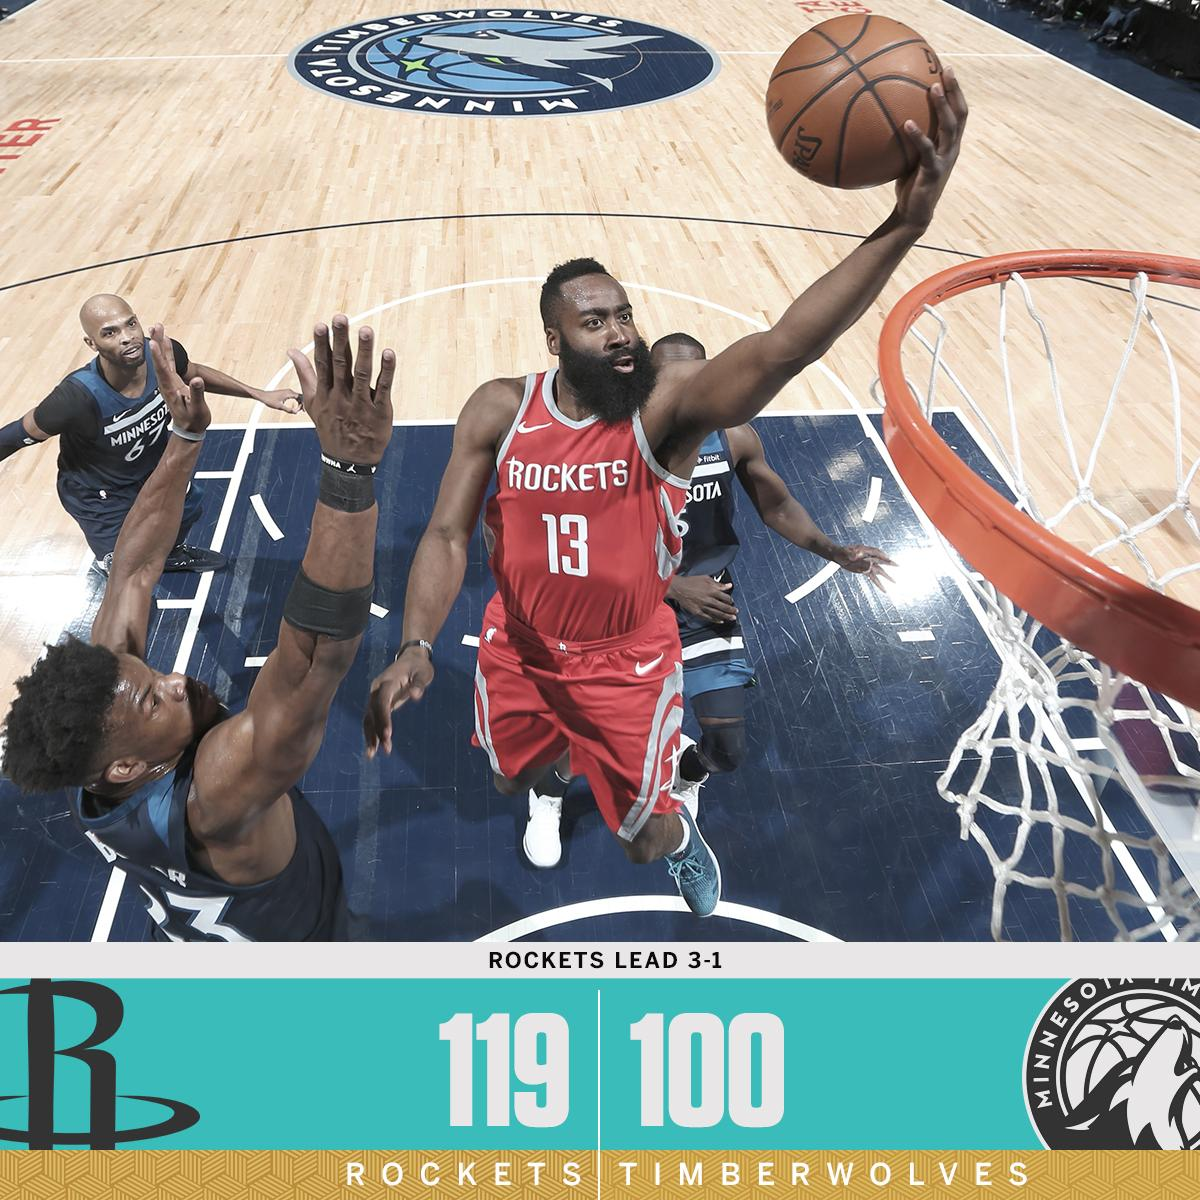 The Rockets took over in Minnesota to grab the 3-1 series lead. https://t.co/ygpjvaiwBY